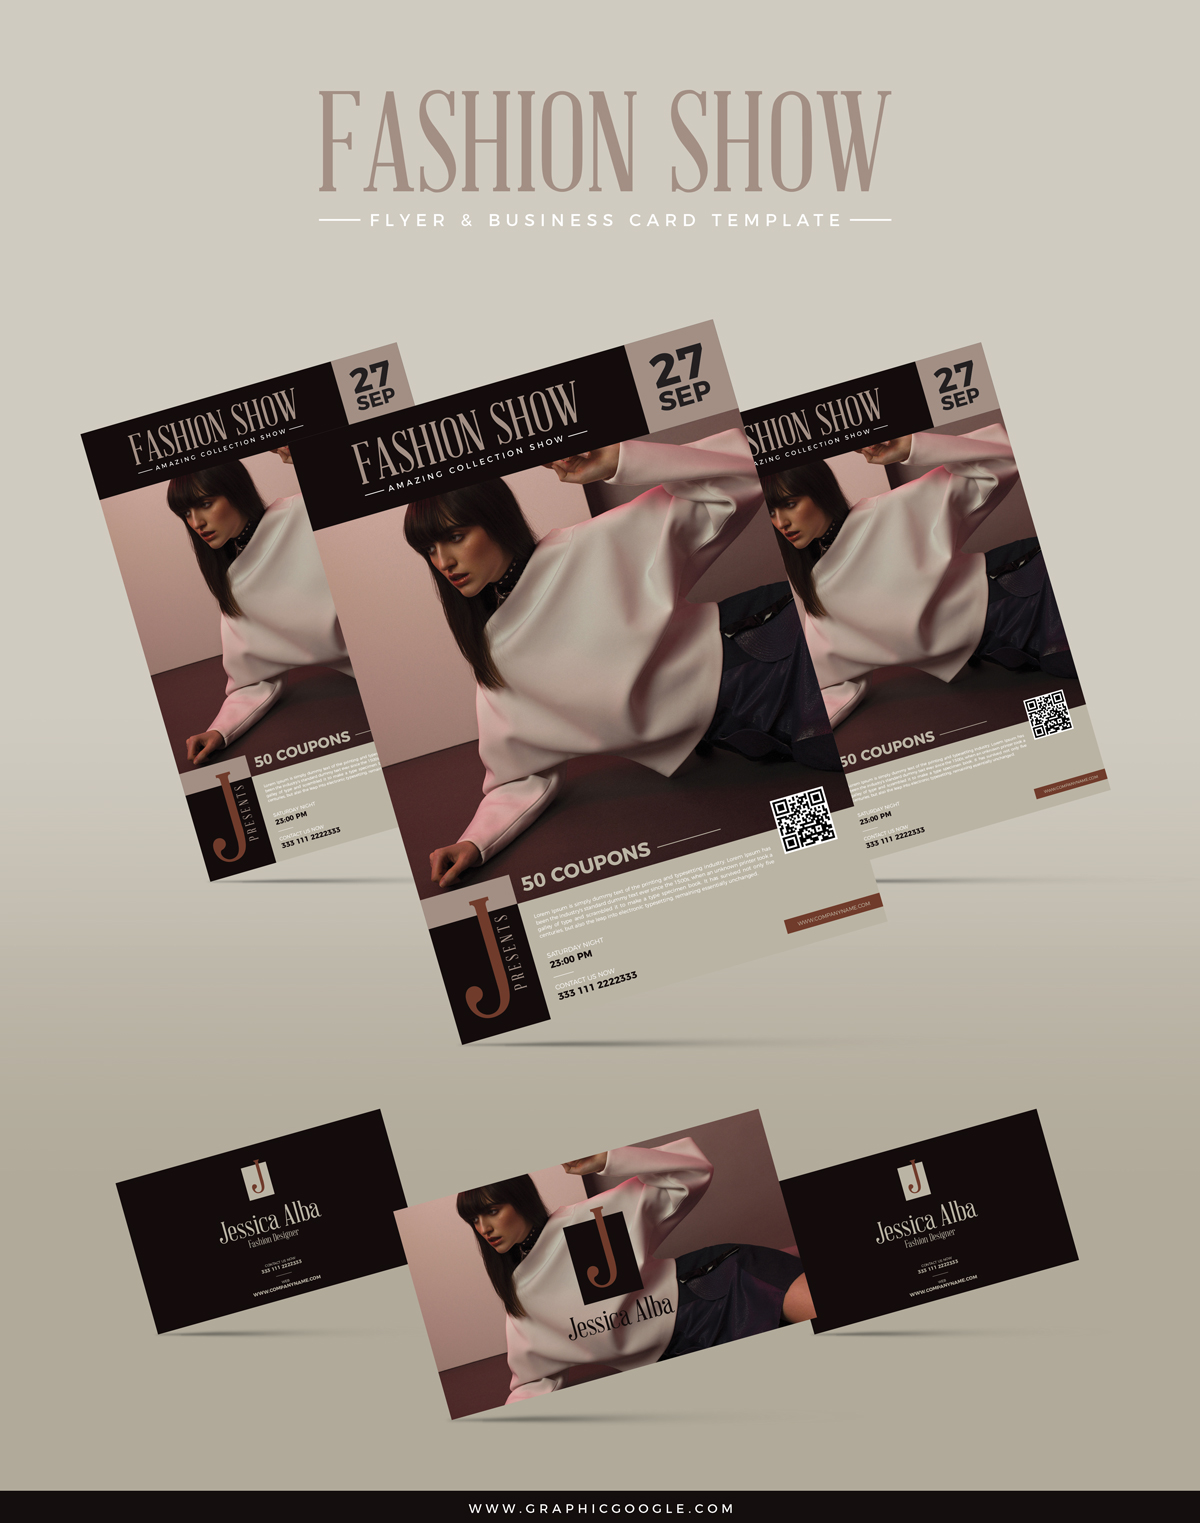 free fashion show flyer business card template. Black Bedroom Furniture Sets. Home Design Ideas